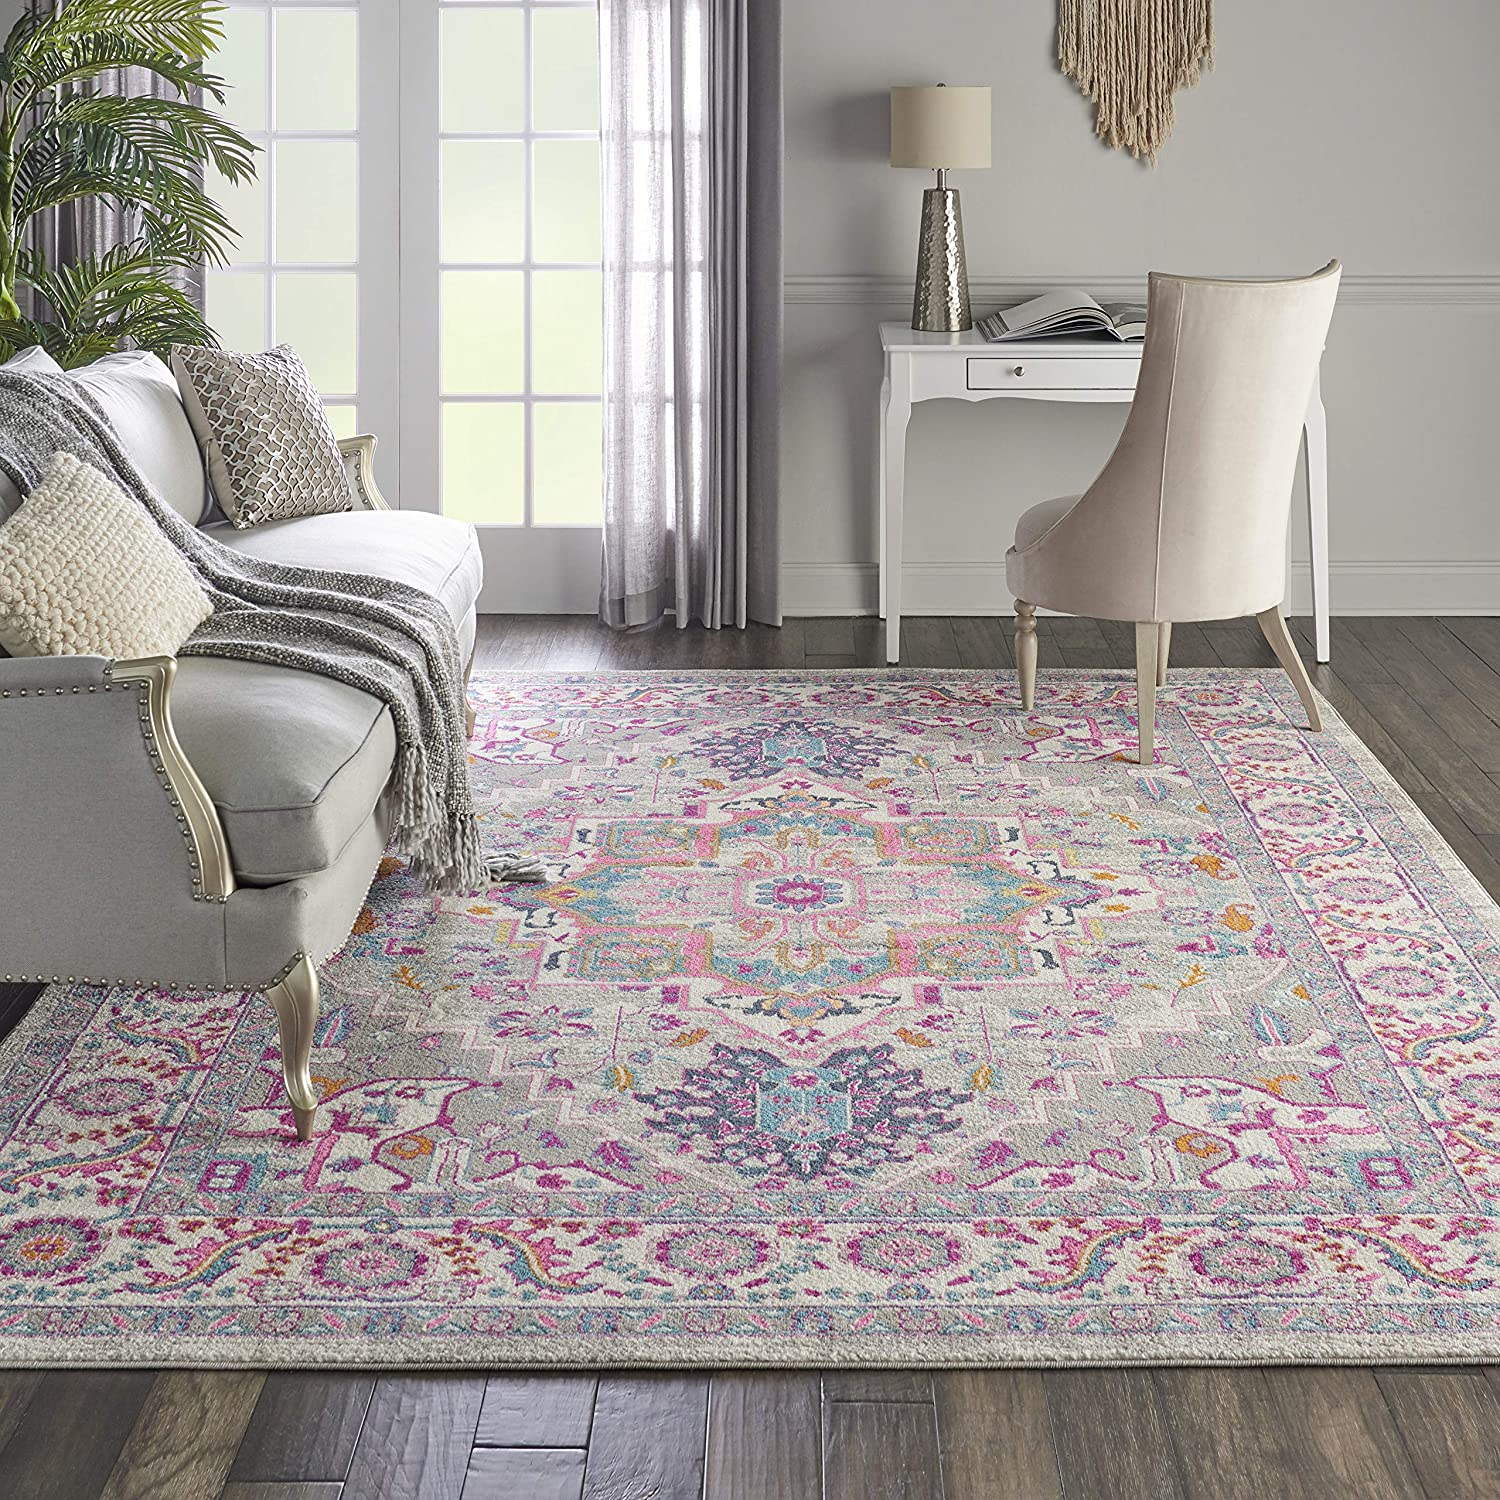 "Nourison PSN20 Passion Persian Colorful Light Grey/Pink Area Rug 6'7"" X 9'6"", 7' x 10'"